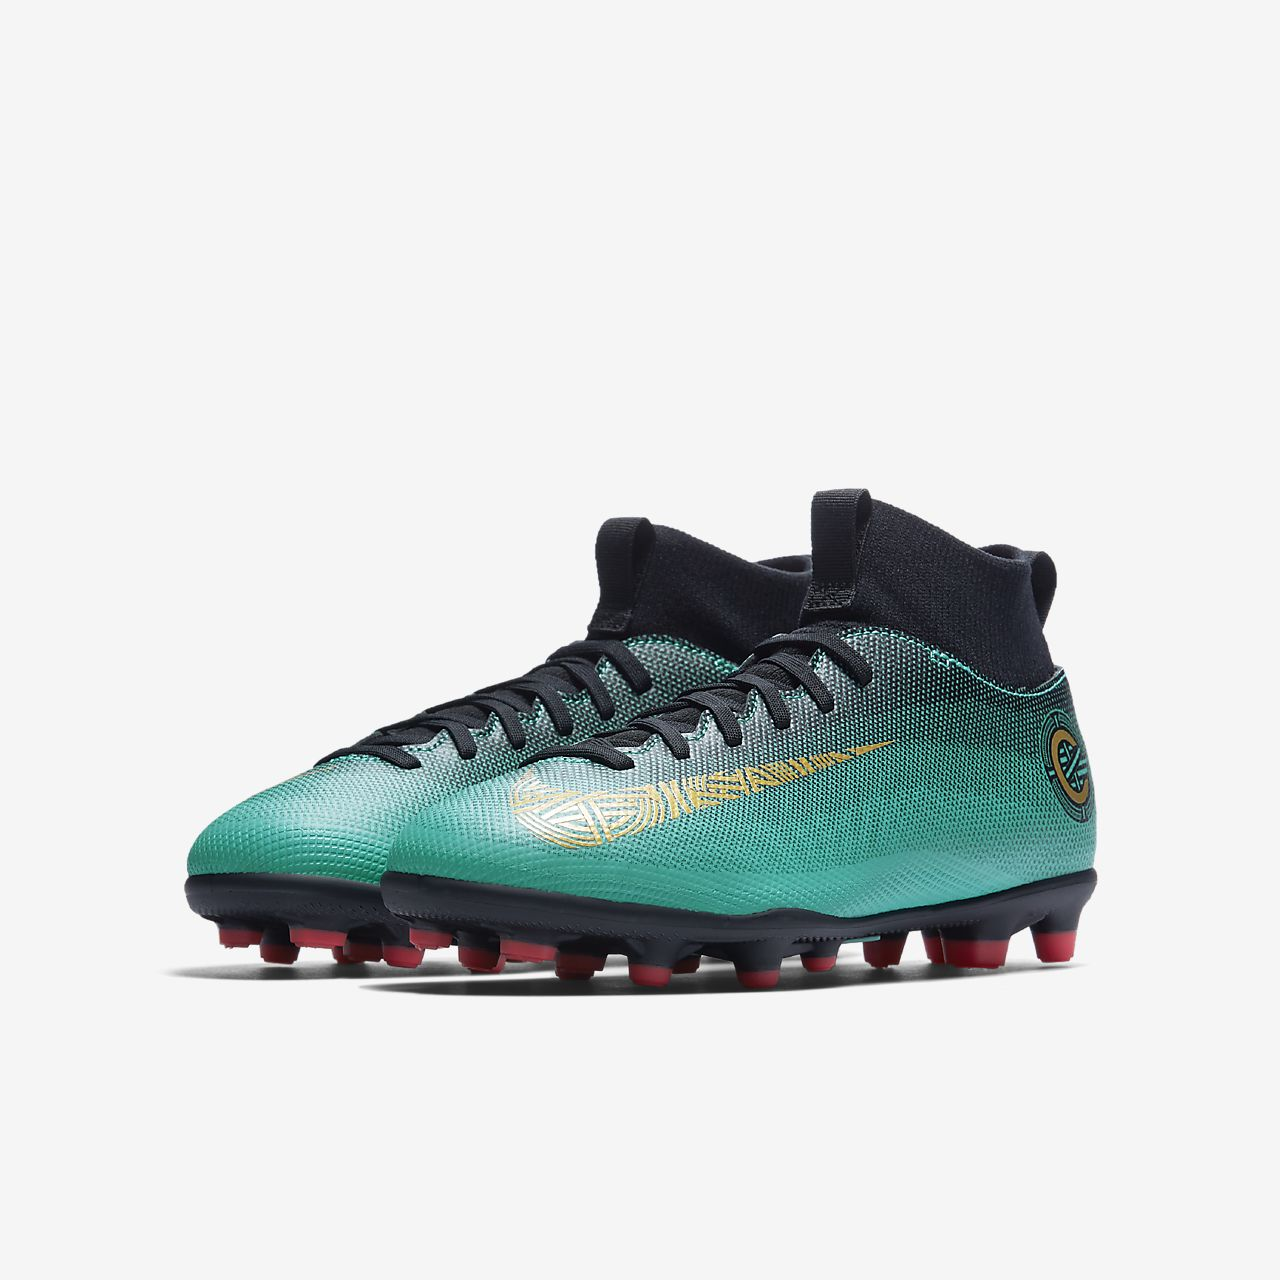 reputable site 07ea7 a4e0b ... Nike Jr. Mercurial Superfly VI Club CR7 Younger Older Kids  Multi-Ground